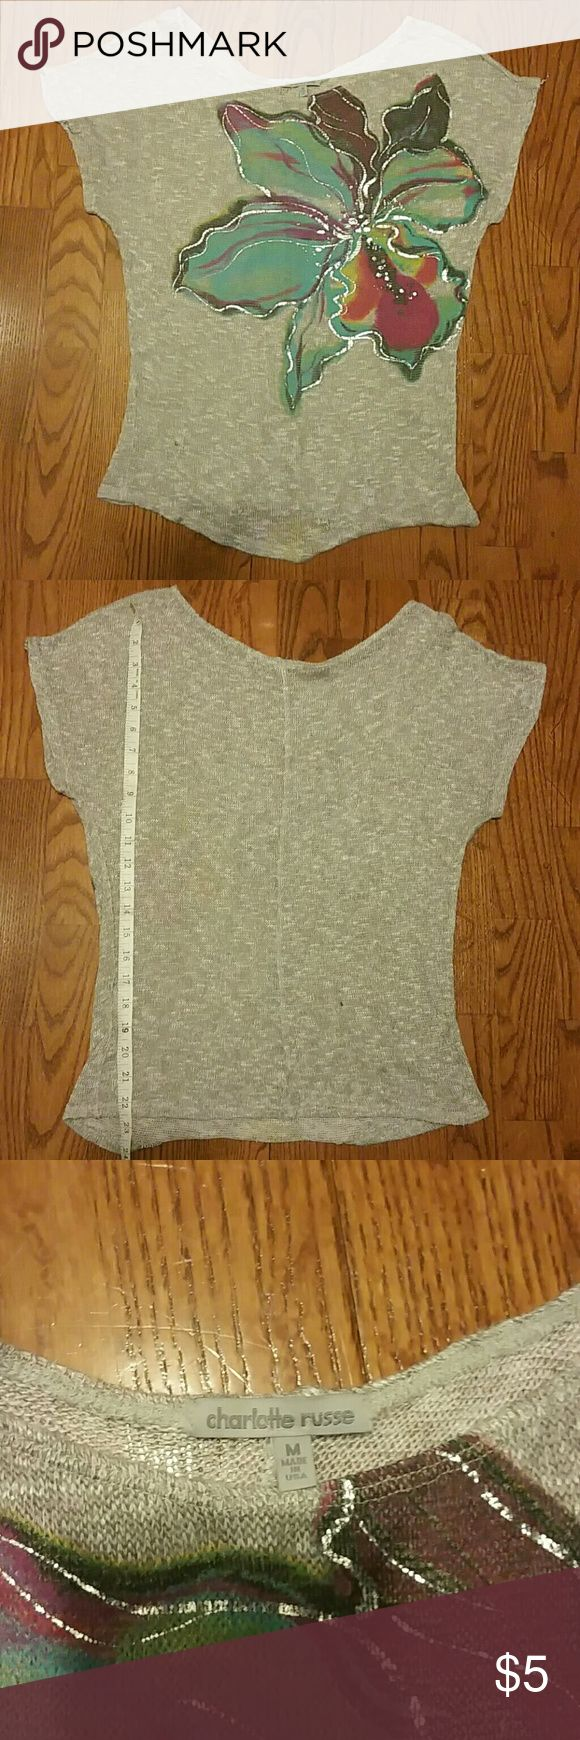 Cute tops Bundled cute tops, gently used good condition.   Black and white stripped - Papaya brand  Gray floral sweater - Charlotte Rouse - polyester, rayon and spandex Tops